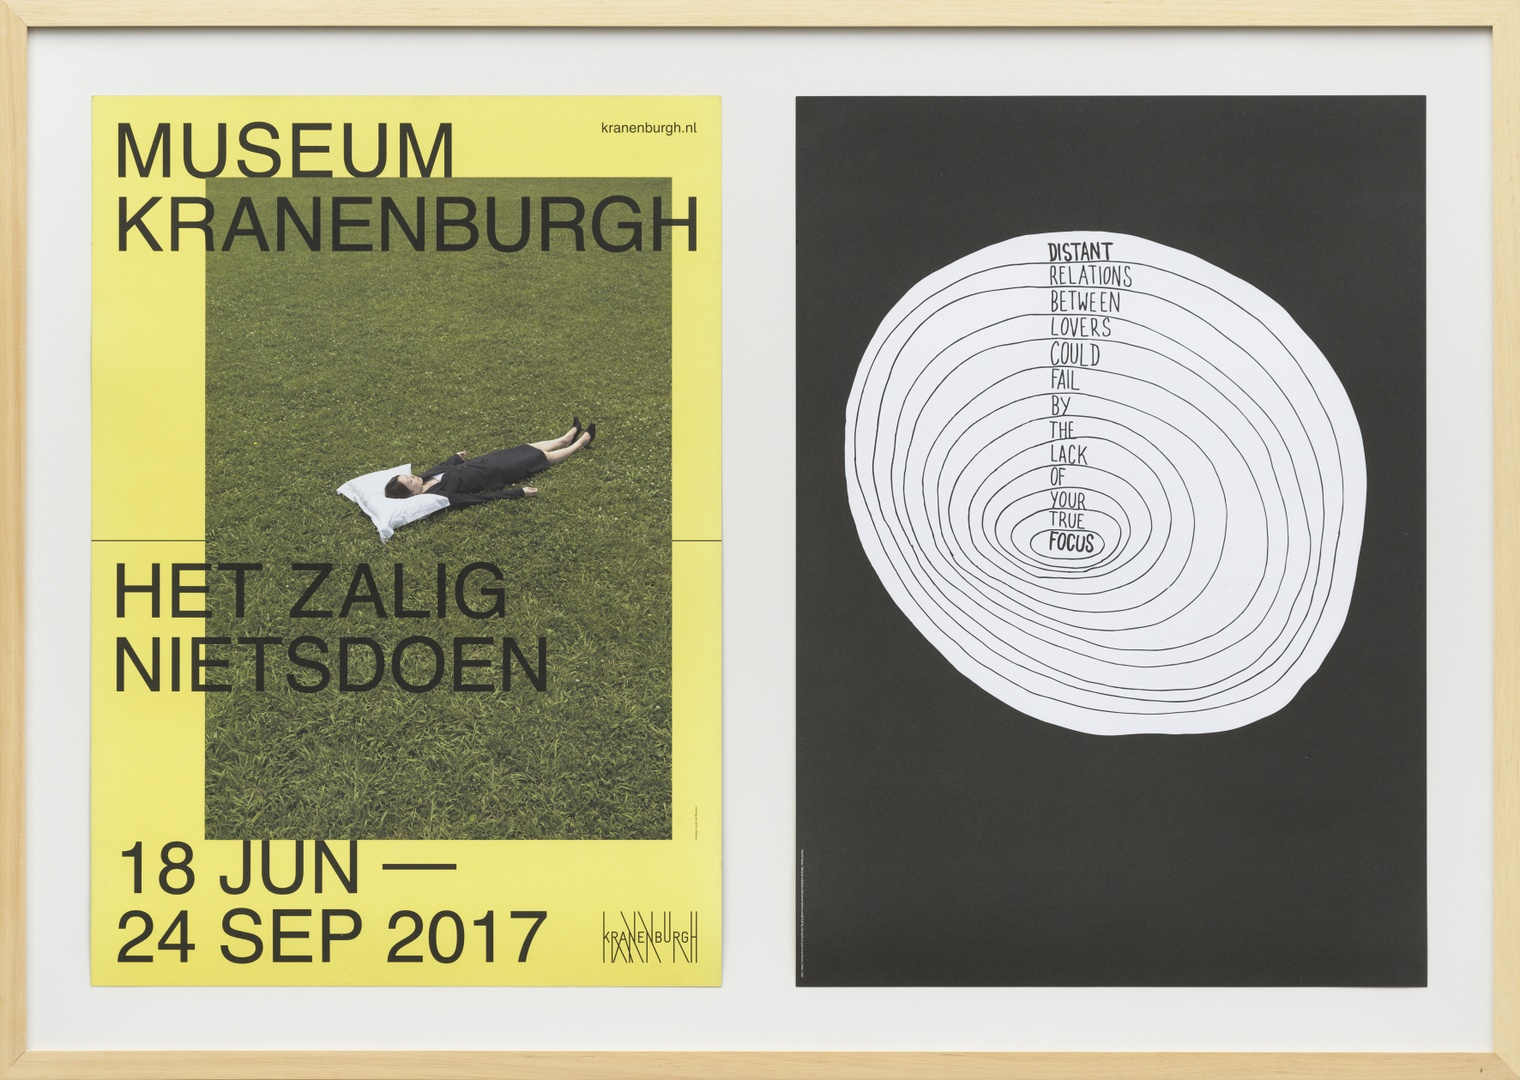 'Untitled' (Distant relations between lovers could fail by the lack of your true focus) : tentoonstellingsposter Het zalig nietsdoen, Museum Kranenburgh, 18 juni - 24 september 2017